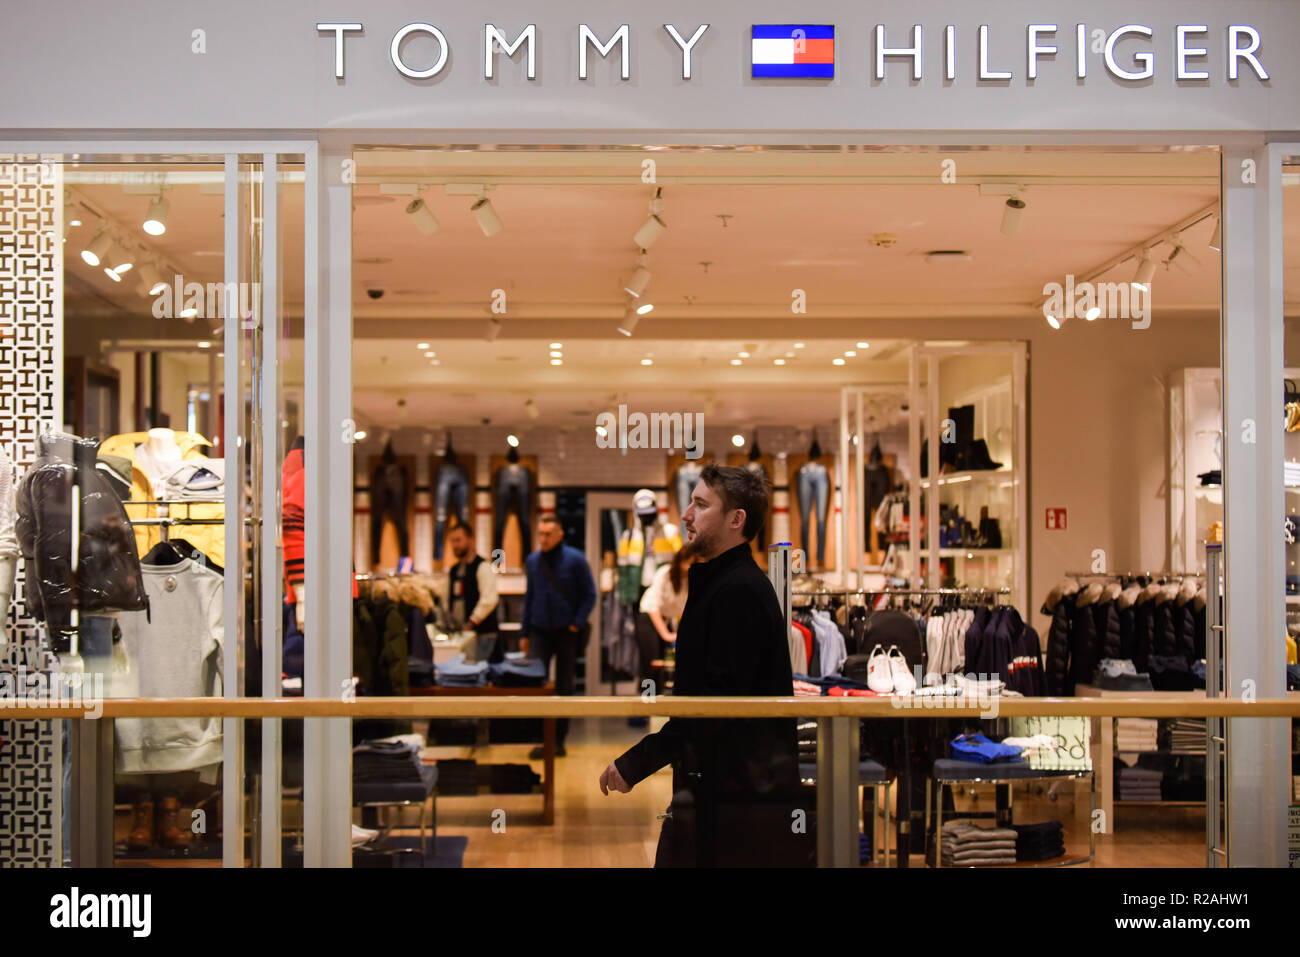 42363ccc Tommy Hilfiger Sign Stock Photos & Tommy Hilfiger Sign Stock Images ...